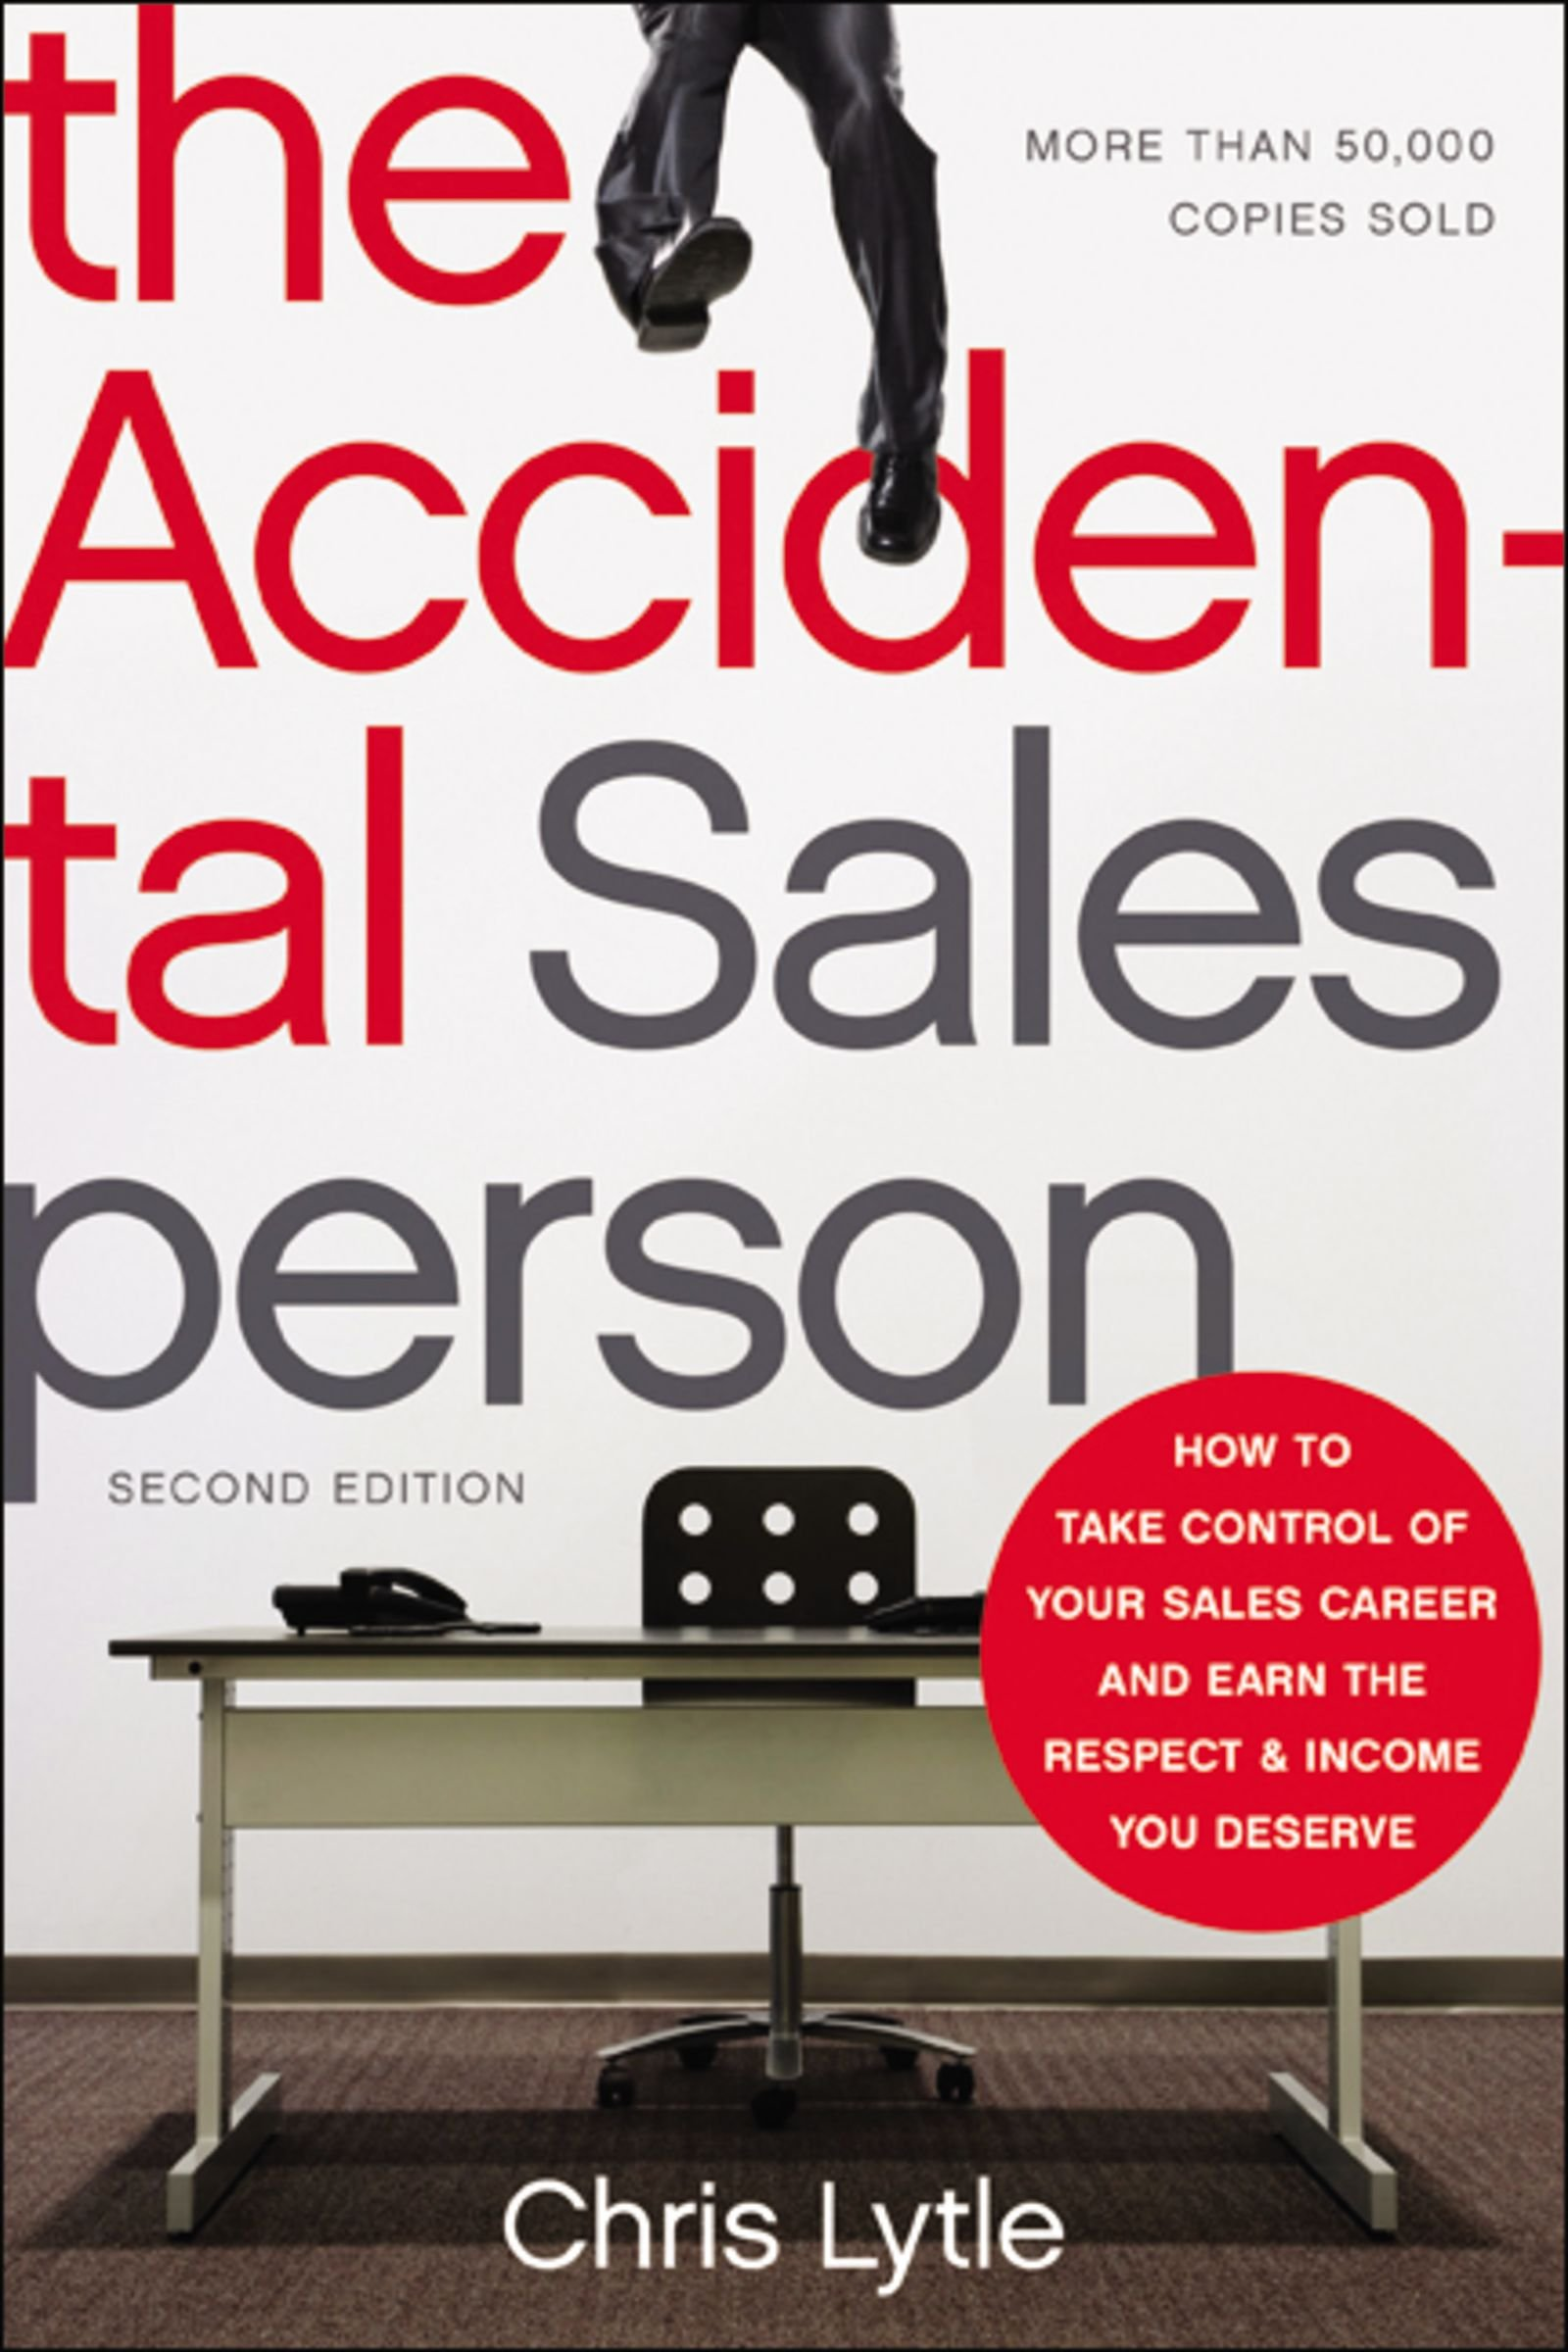 Read Online The Accidental Salesperson: How to Take Control of Your Sales Career and Earn the Respect and Income You Deserve PDF